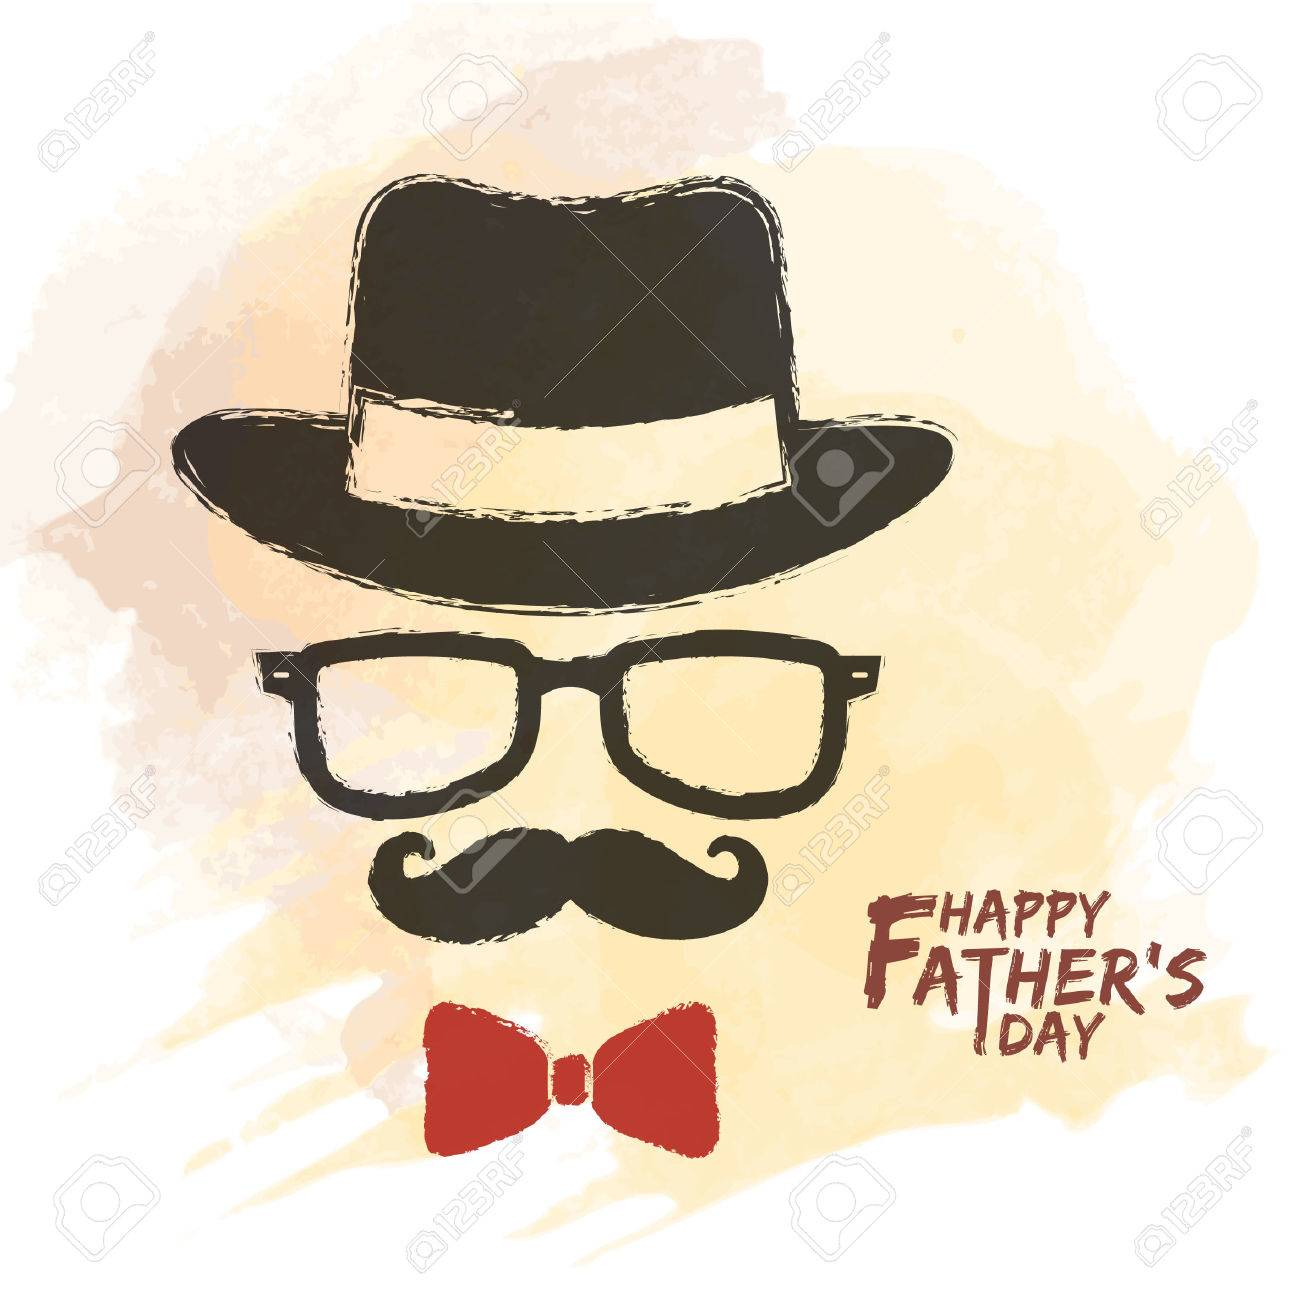 ec0acb658 Happy Father's Day. Men Face In Retro Hipster Style With Hat ...